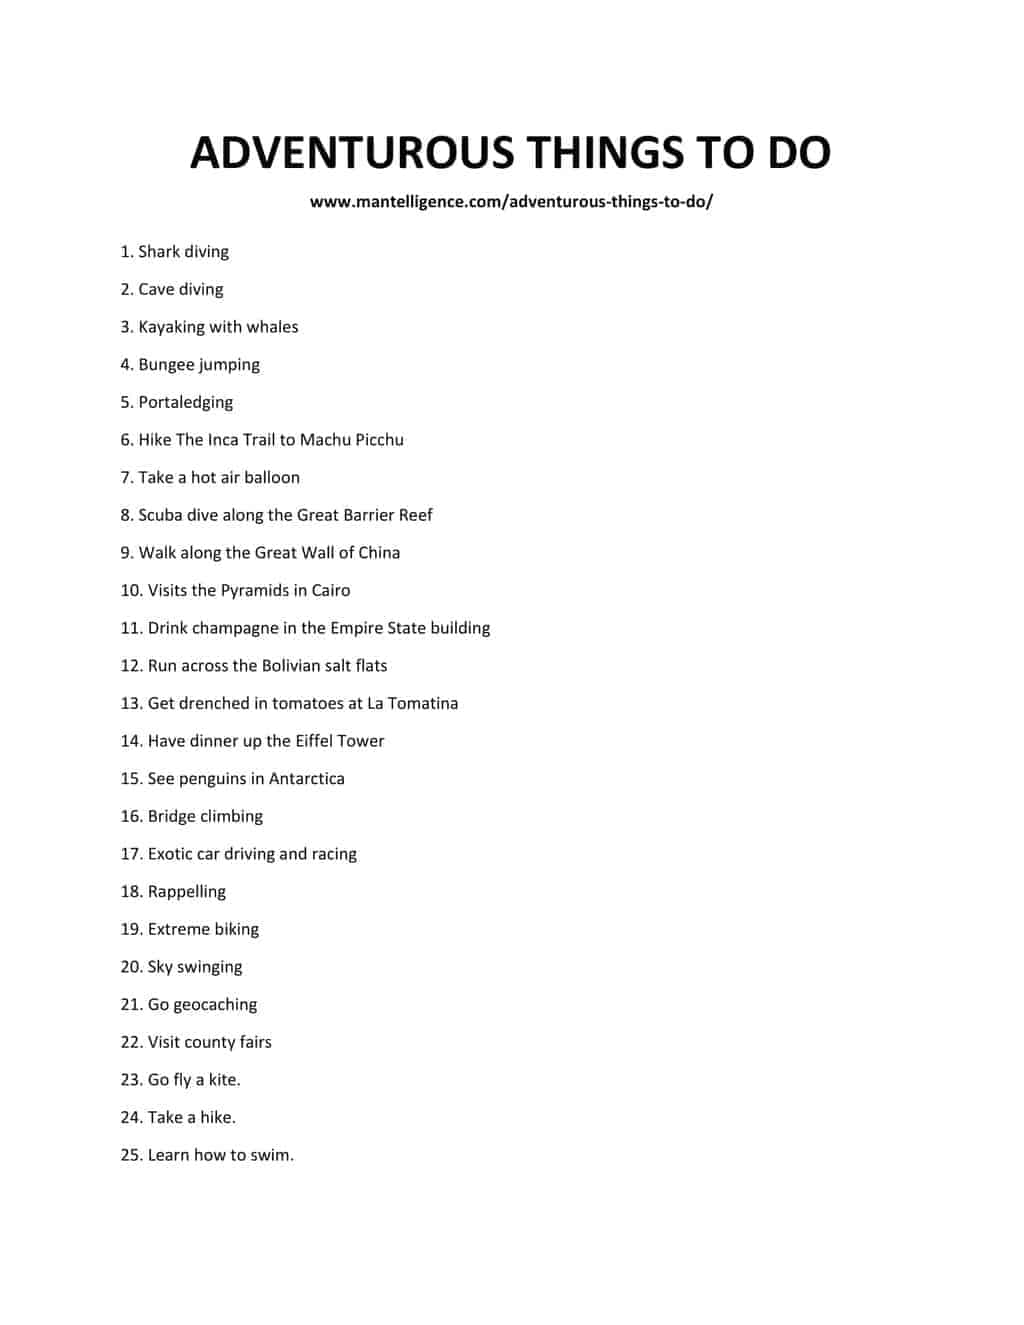 ADVENTUROUS_THINGS_TO_DO-1[1]